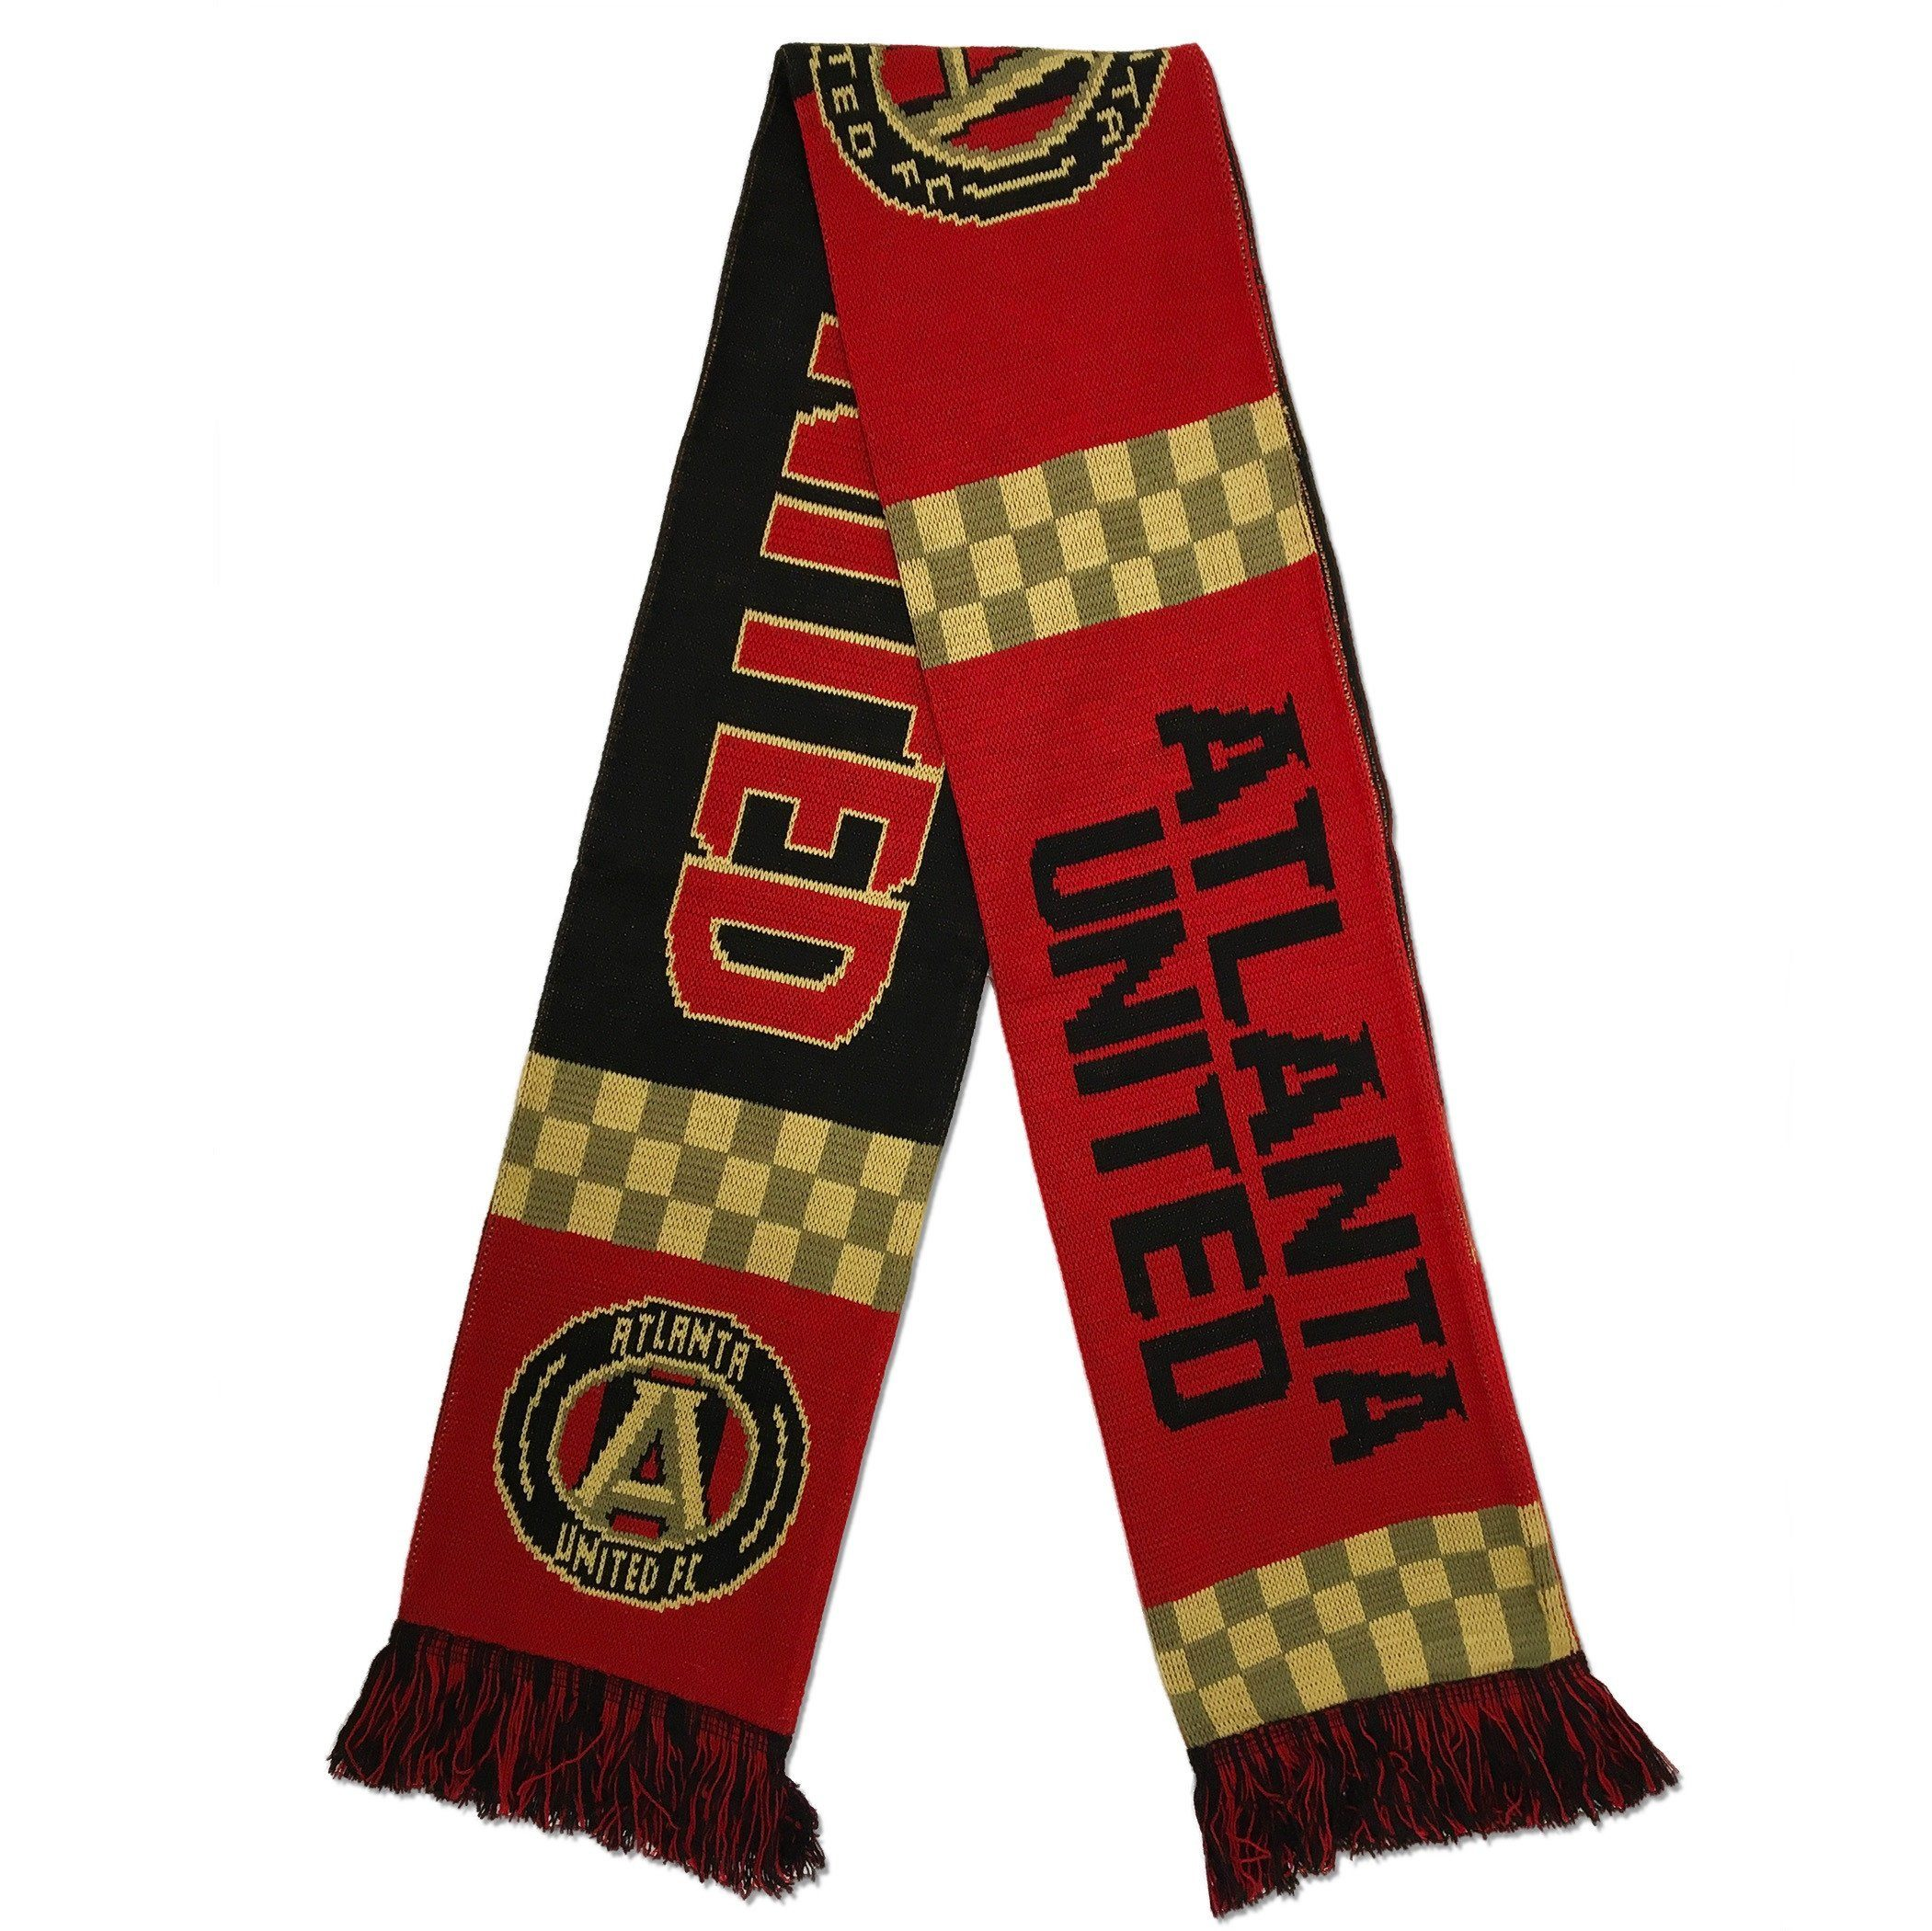 ATLANTA UNITED SCARF - Deco